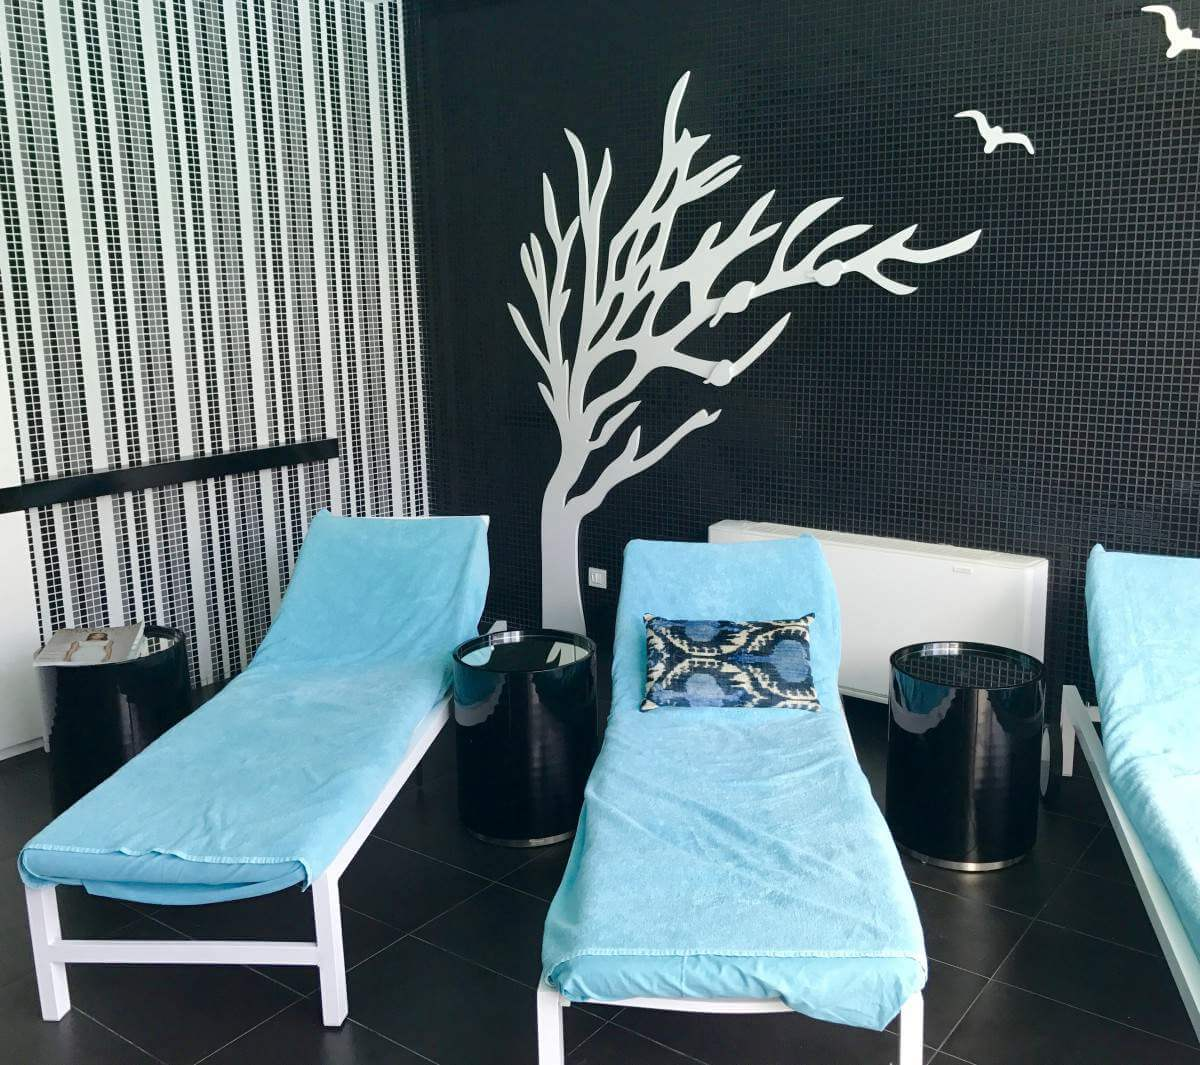 Martinhal Cascais Finisterra Spa - Kids are A Trip